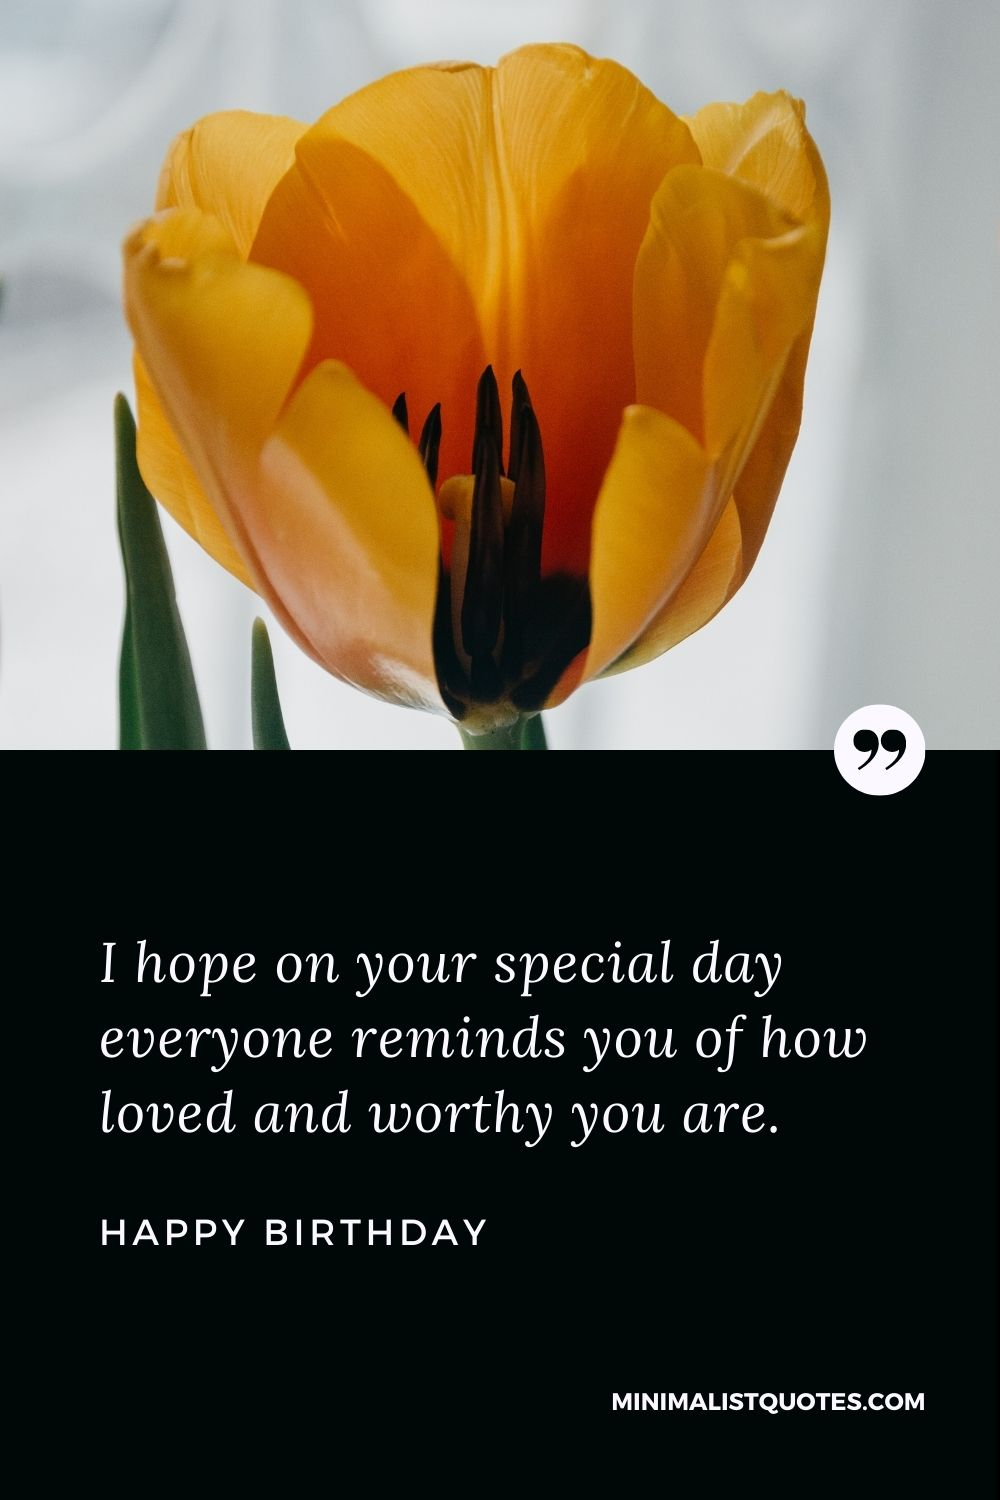 Happy Birthday Wishes - I hope on your special day everyone reminds you of how loved and worthy you are.